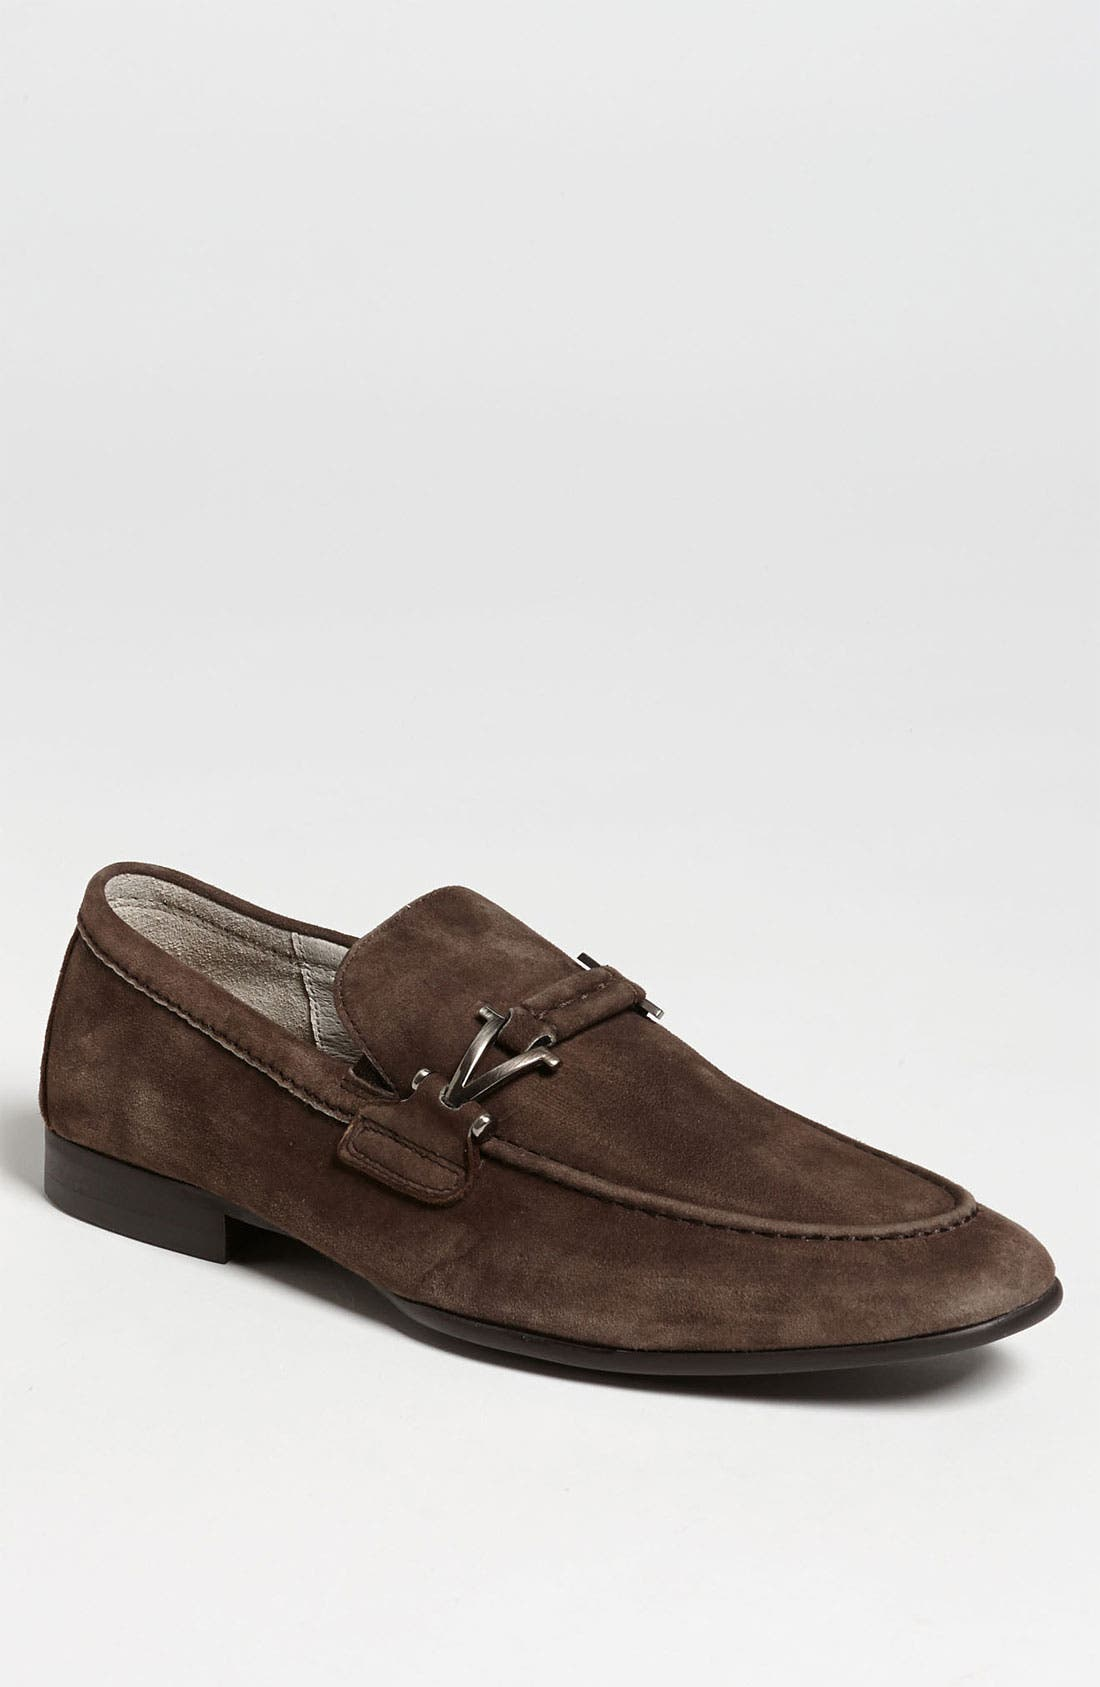 Alternate Image 1 Selected - Vince Camuto 'Castell' Suede Bit Loafer